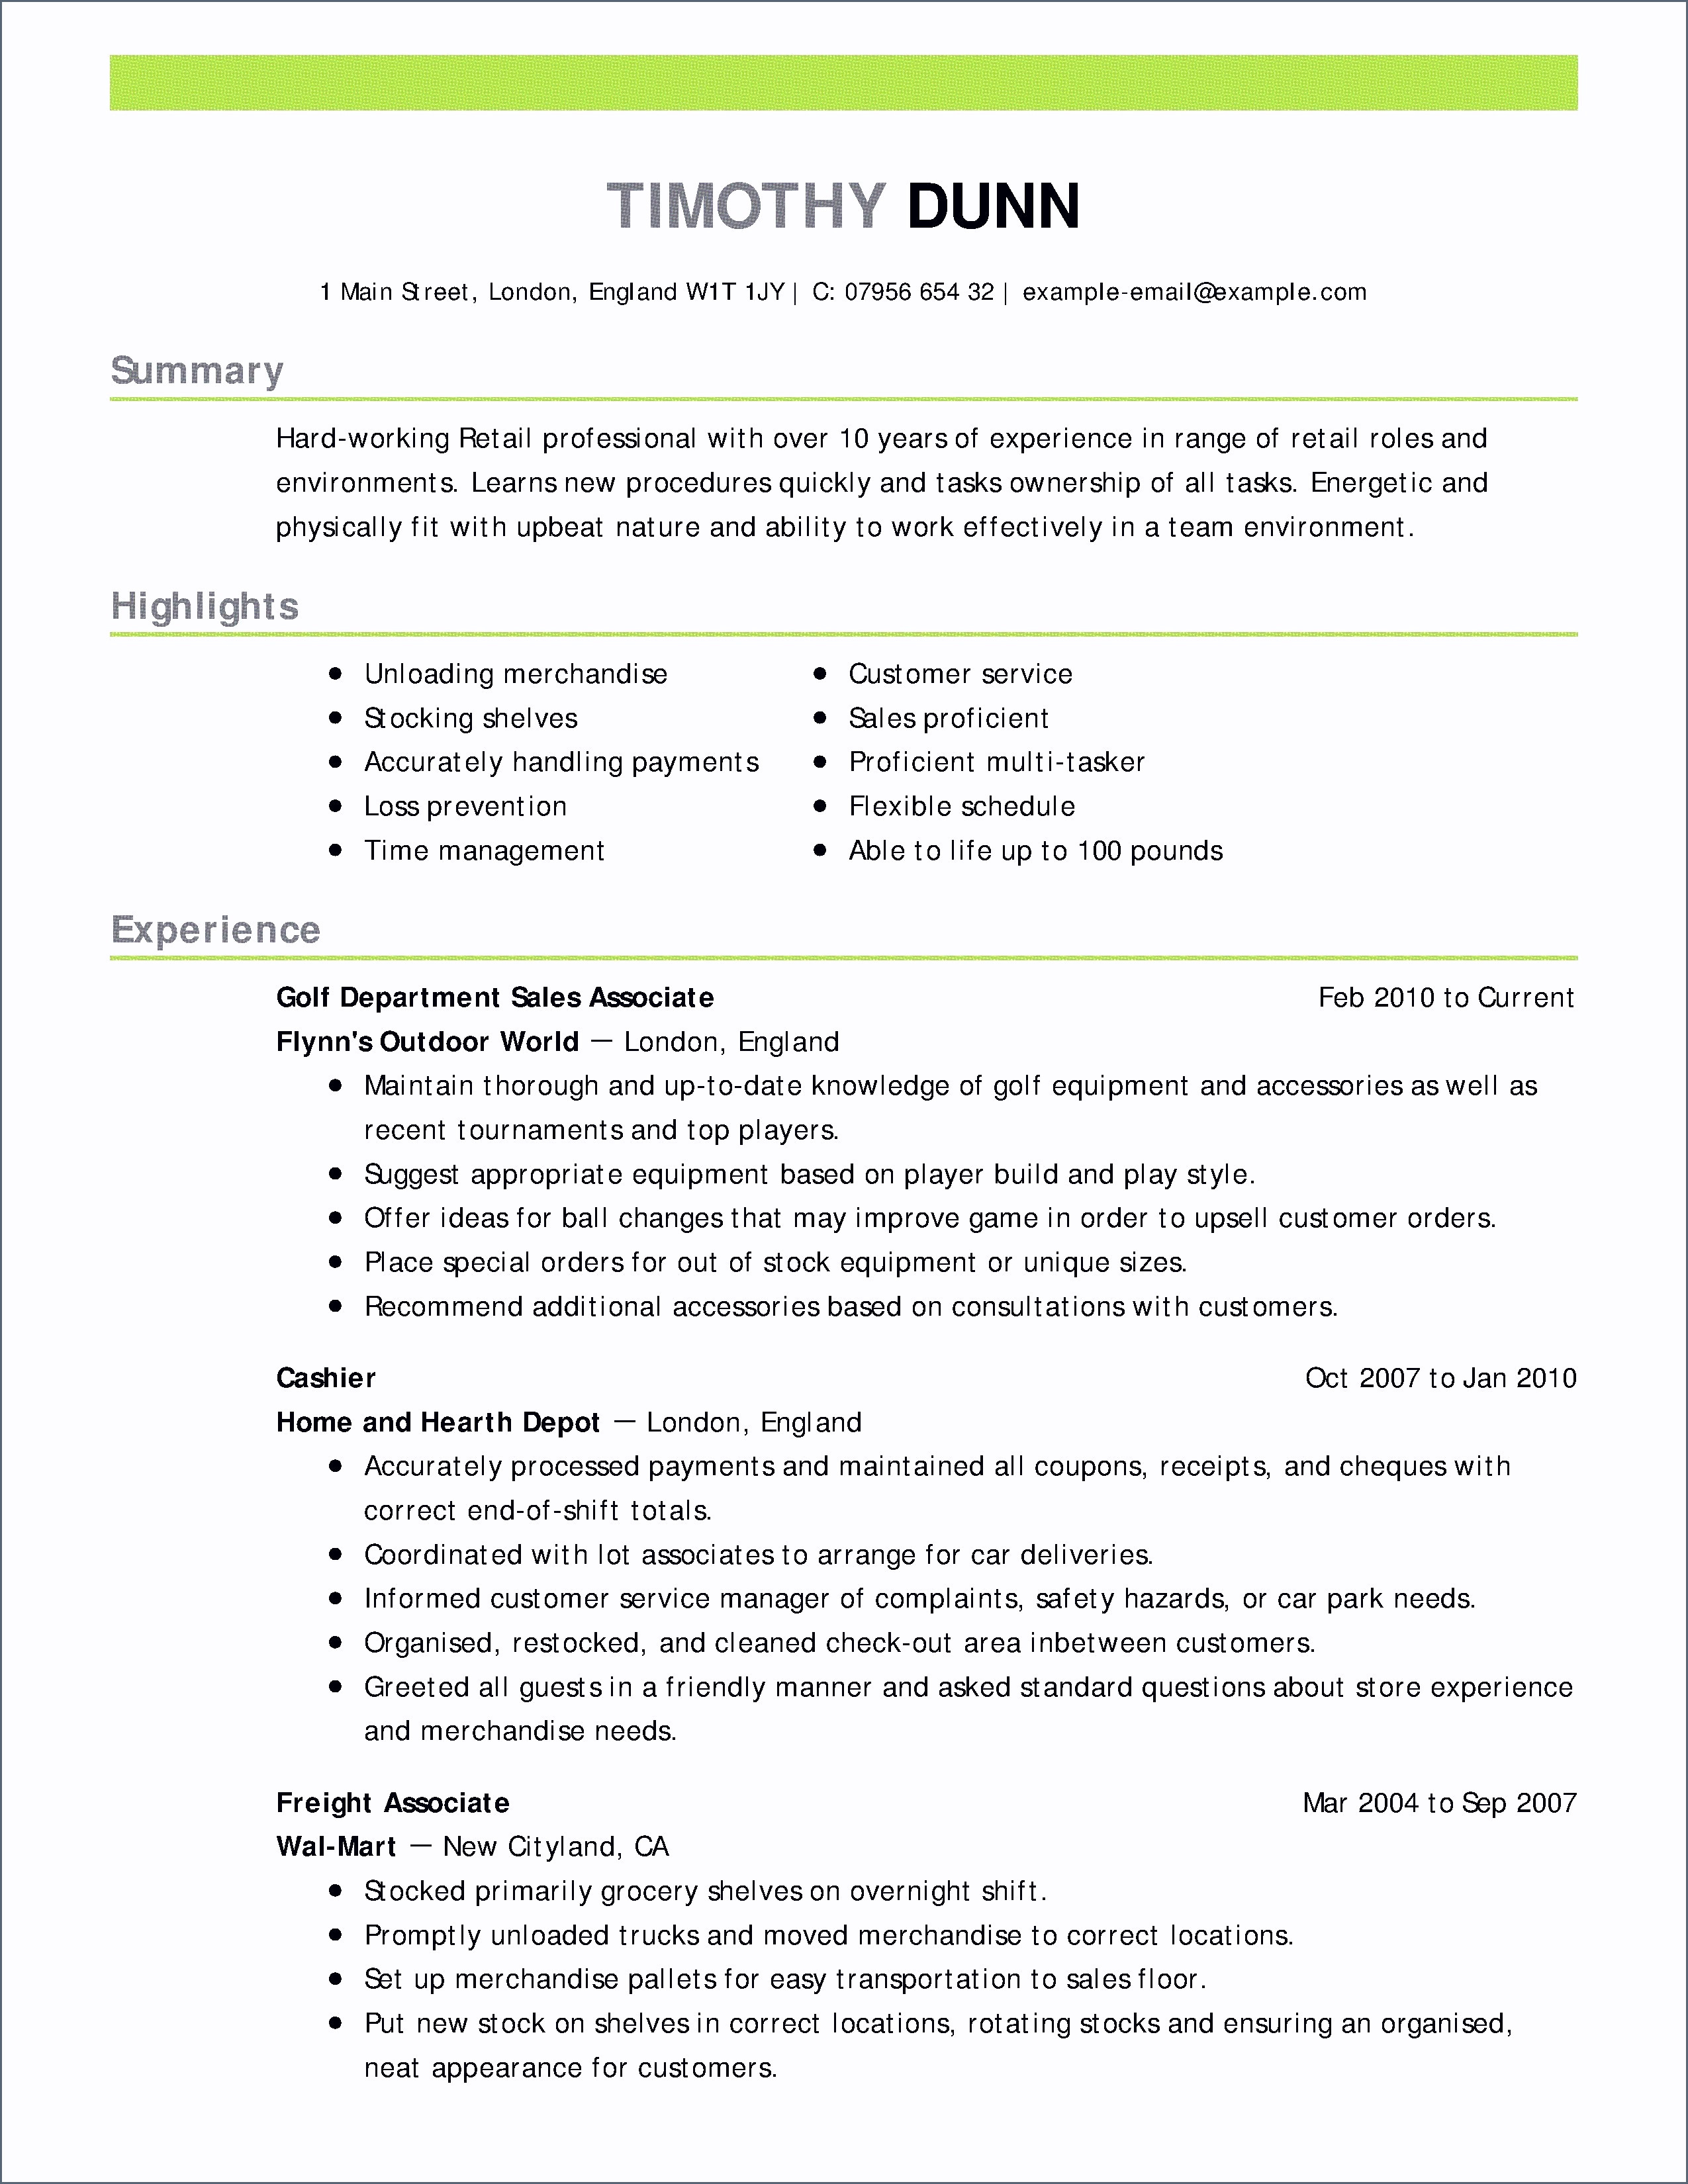 Resume Objective Examples  Good Resume Objective Examples Elegant Good Resume Objective Luxury